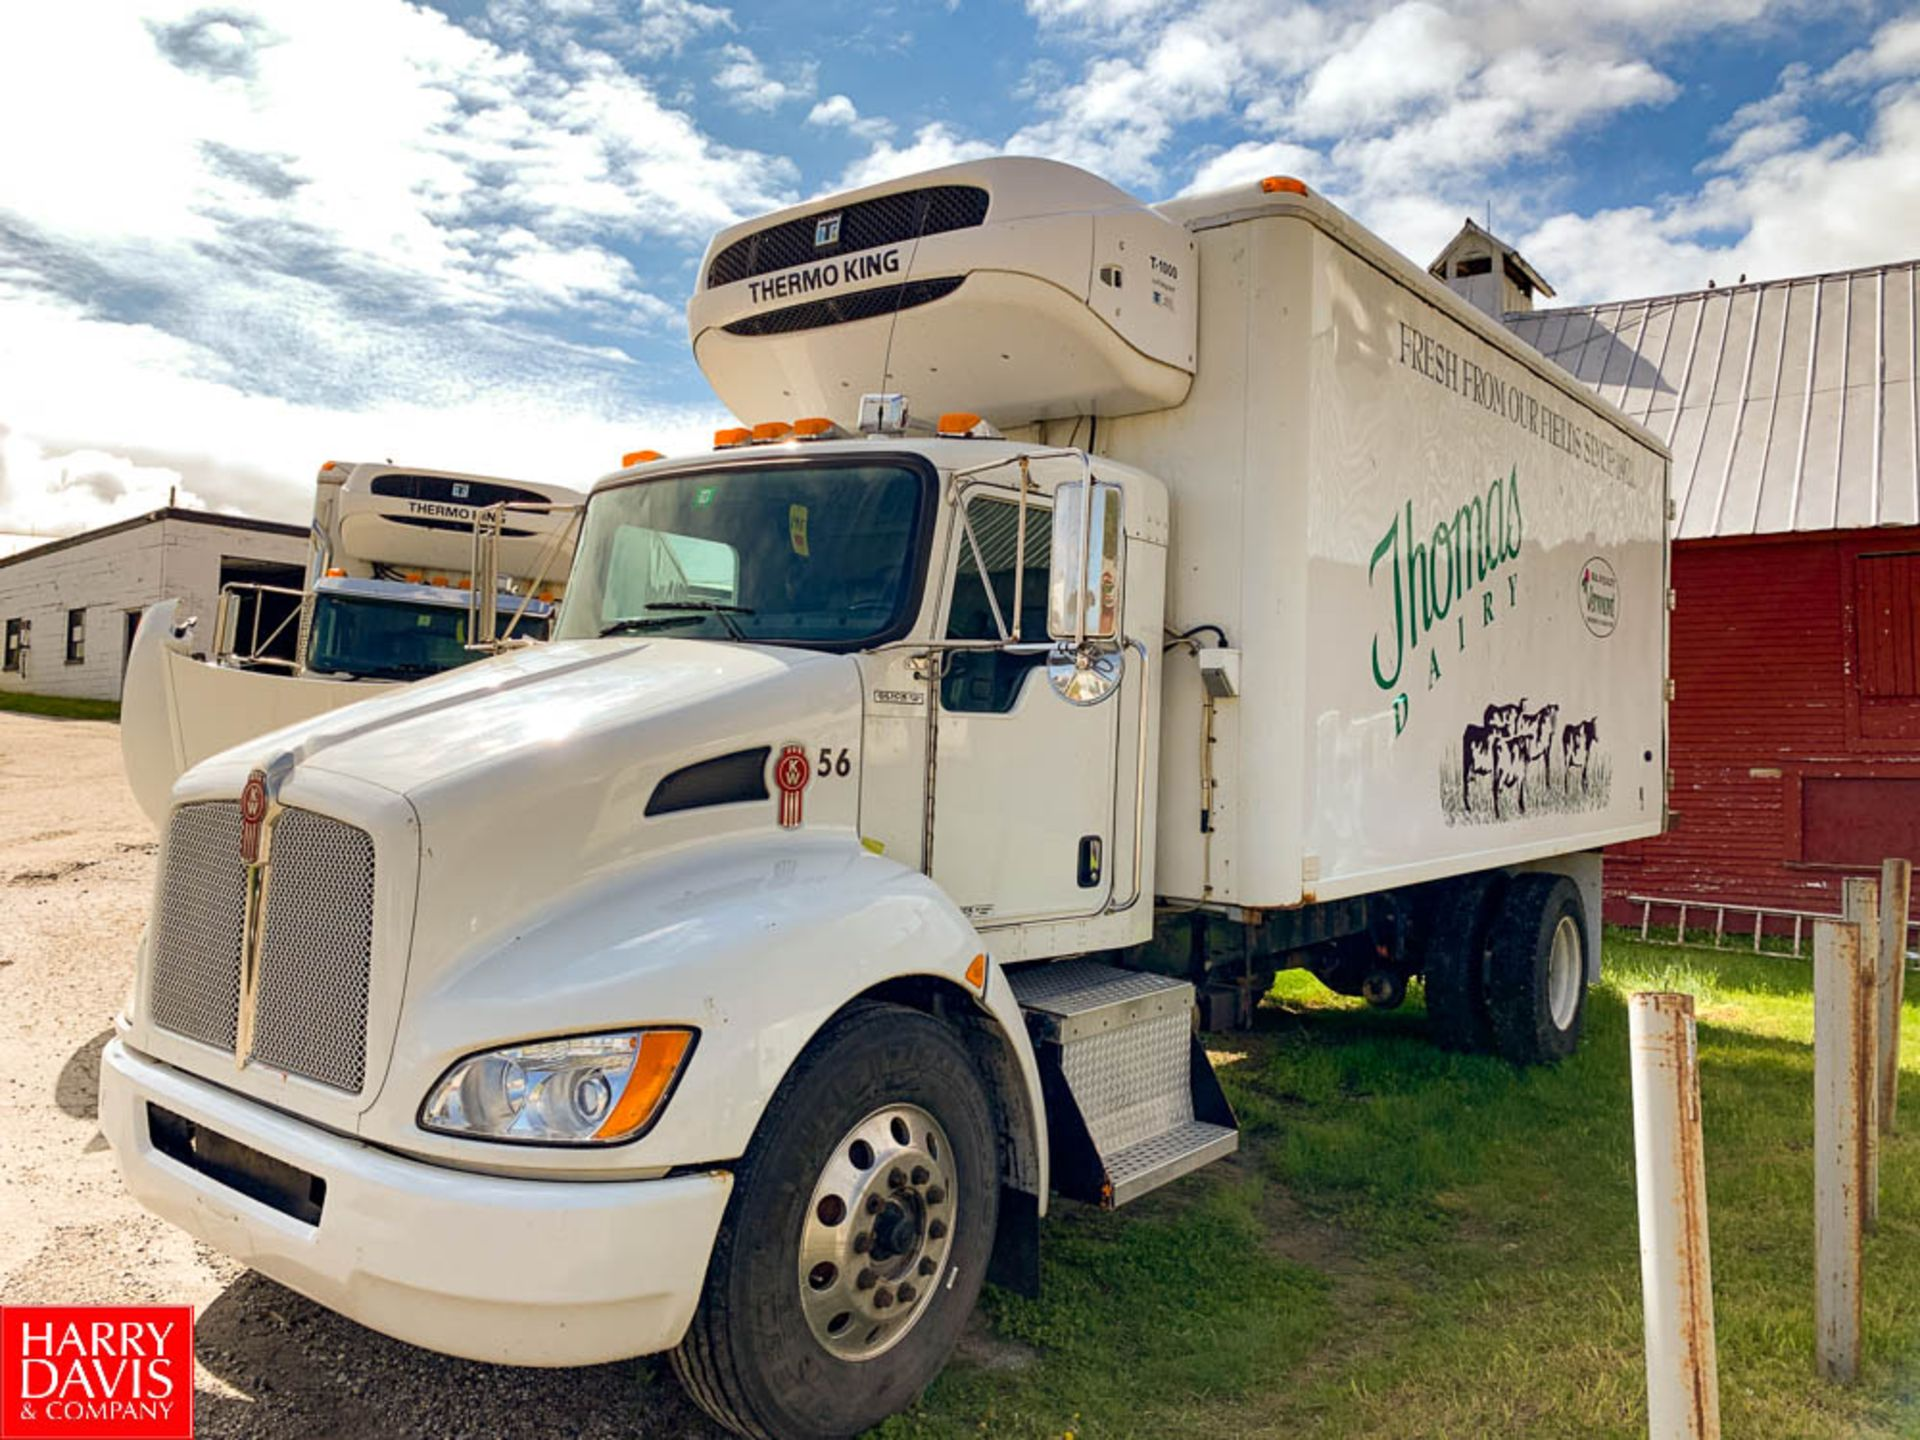 2012 Kenworth 18' Refrigerated Ice Cream Delivery Truck: Model T370, 33,000 GVWR, Paccar PX-8-270